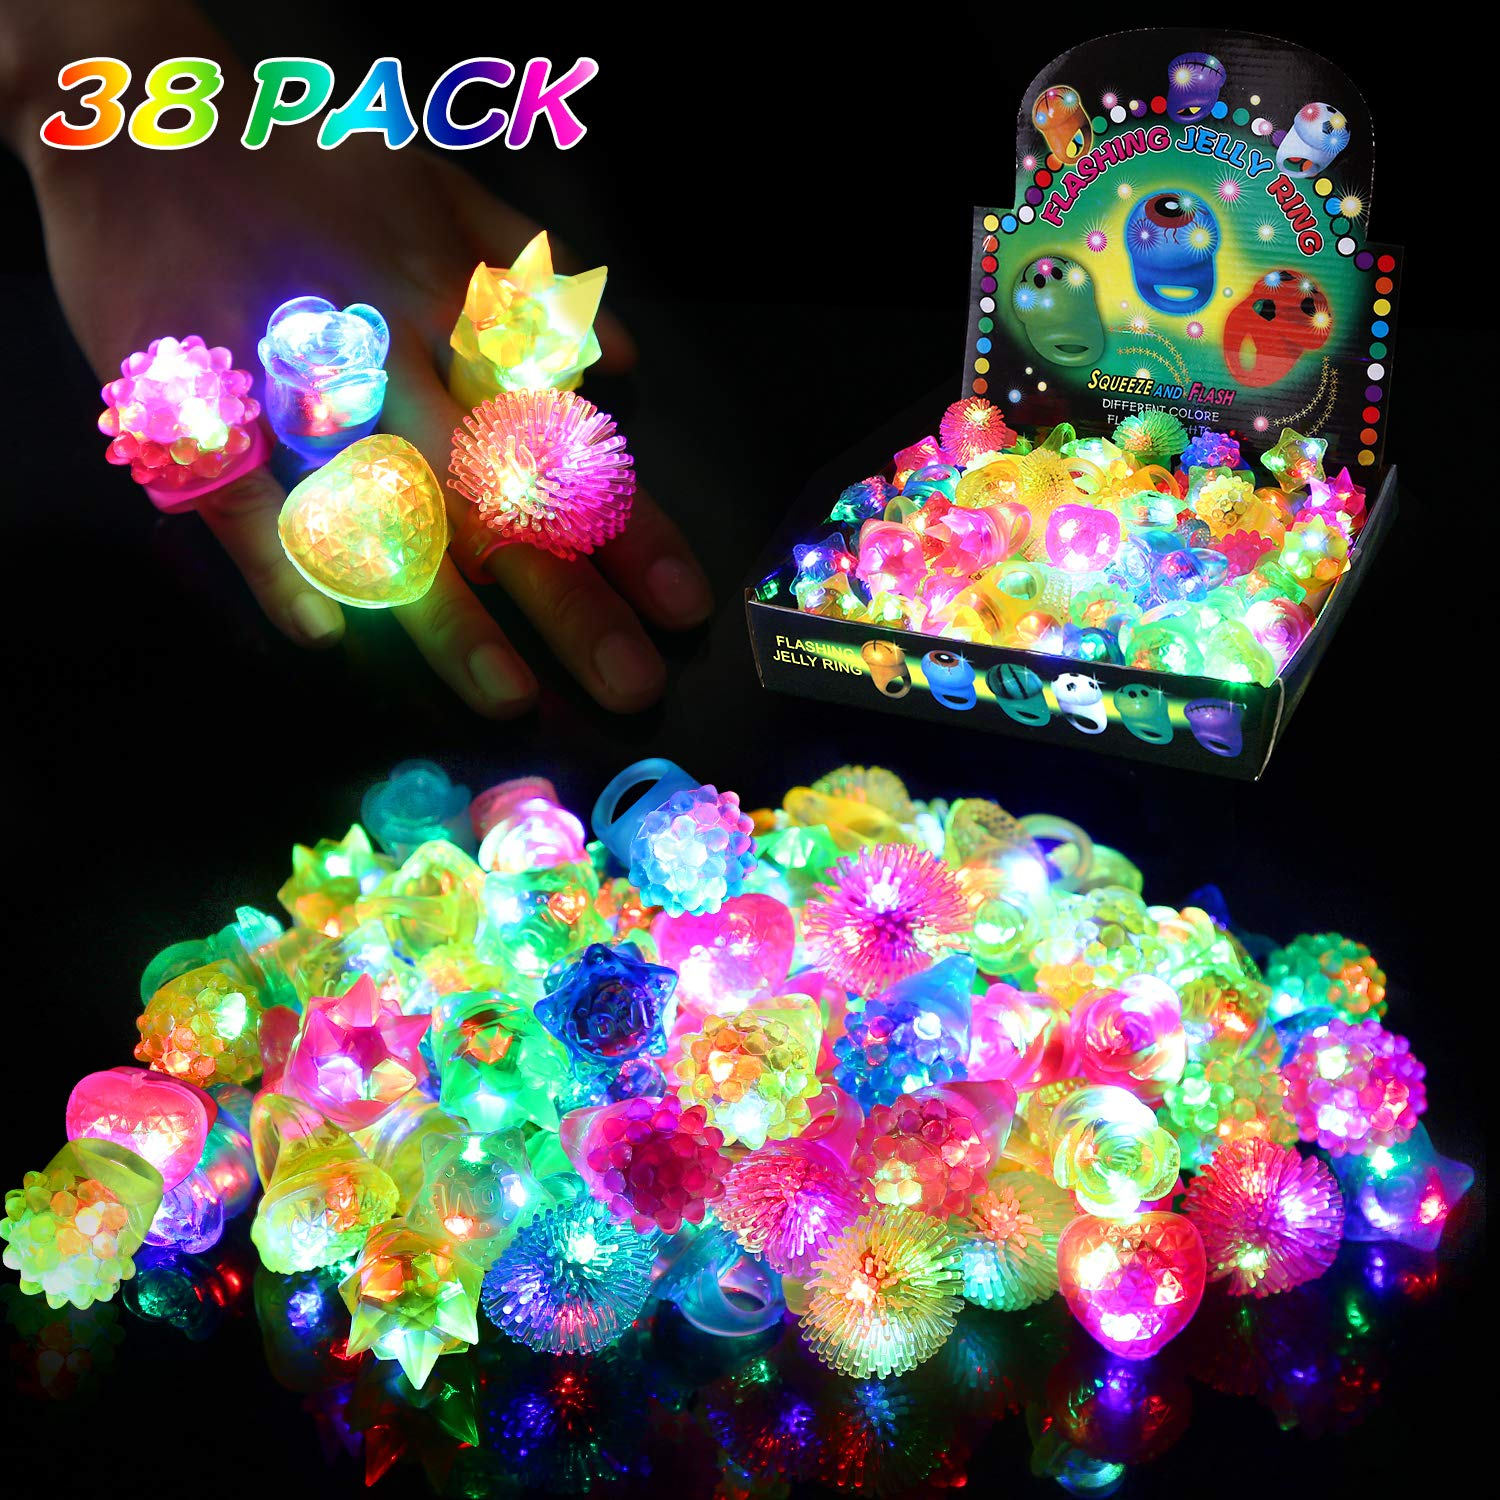 wellvo 38 Pack Light up Rings Party Favors for Kids Flashing Led Toys Glow in The Dark Party Supplies Goody Bag Stuffers by wellvo